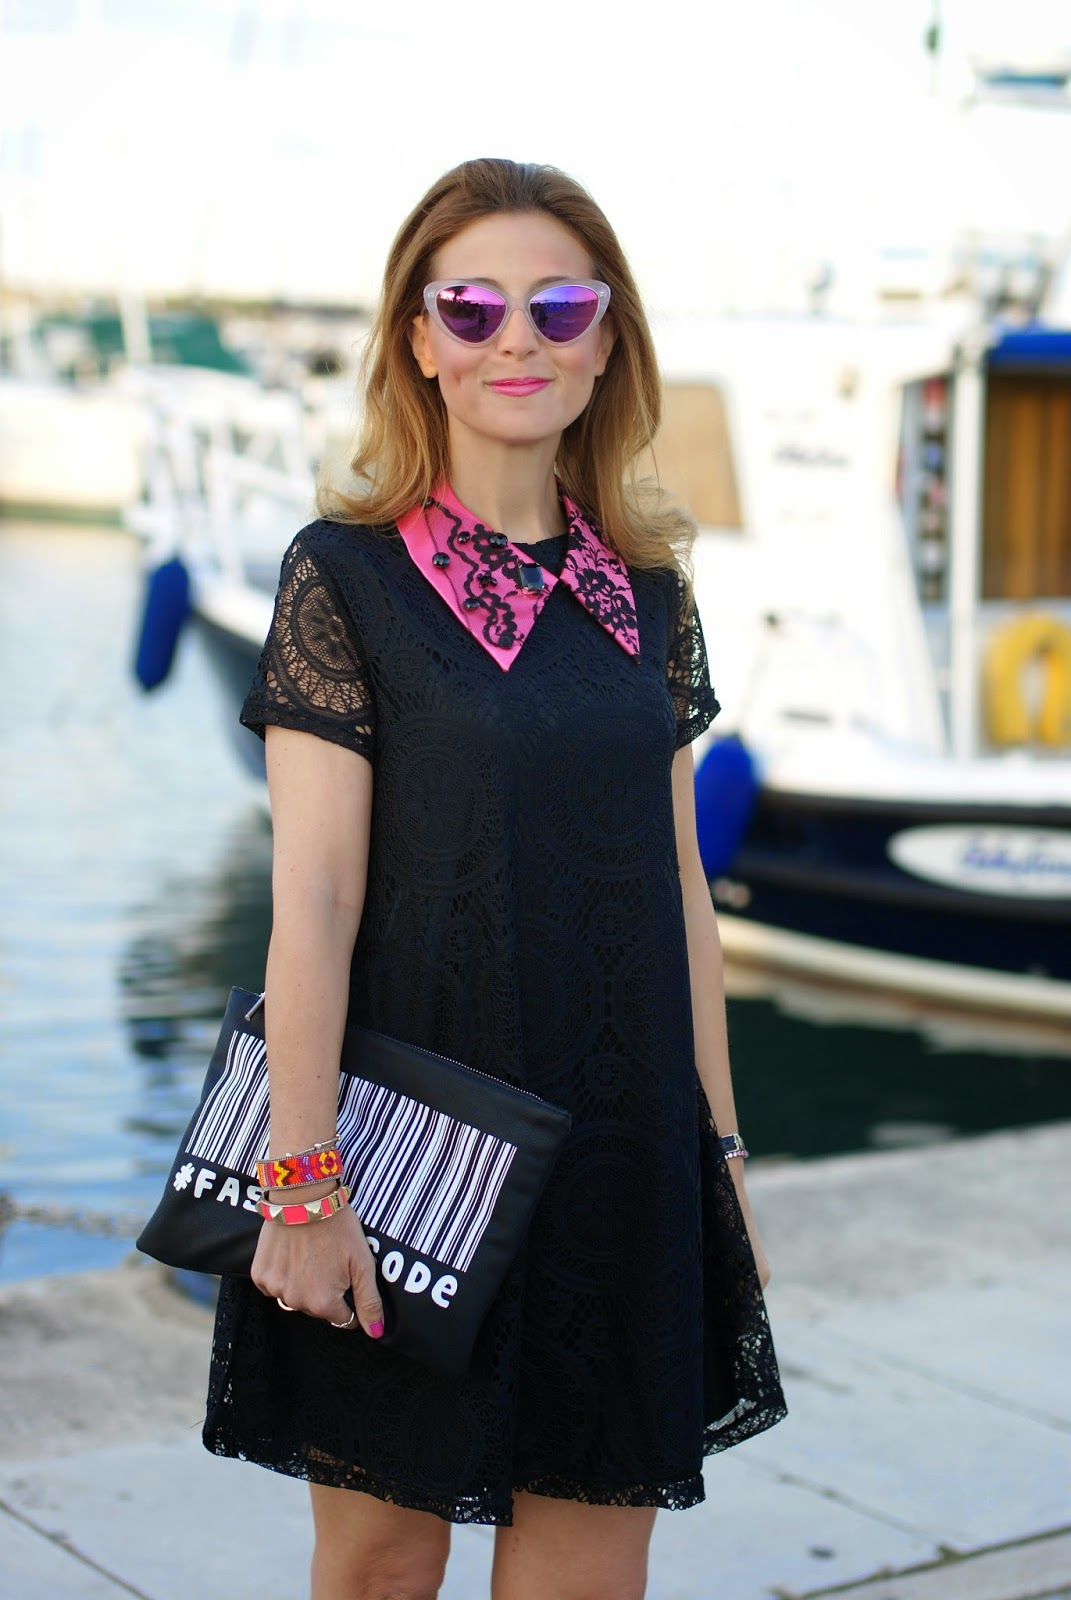 Essequadro eyewear, Fato creazioni, Blackfive lace dress, pink sunglasses, Roberto Botticelli sandals, Fashion and Cookies, fashion blogger